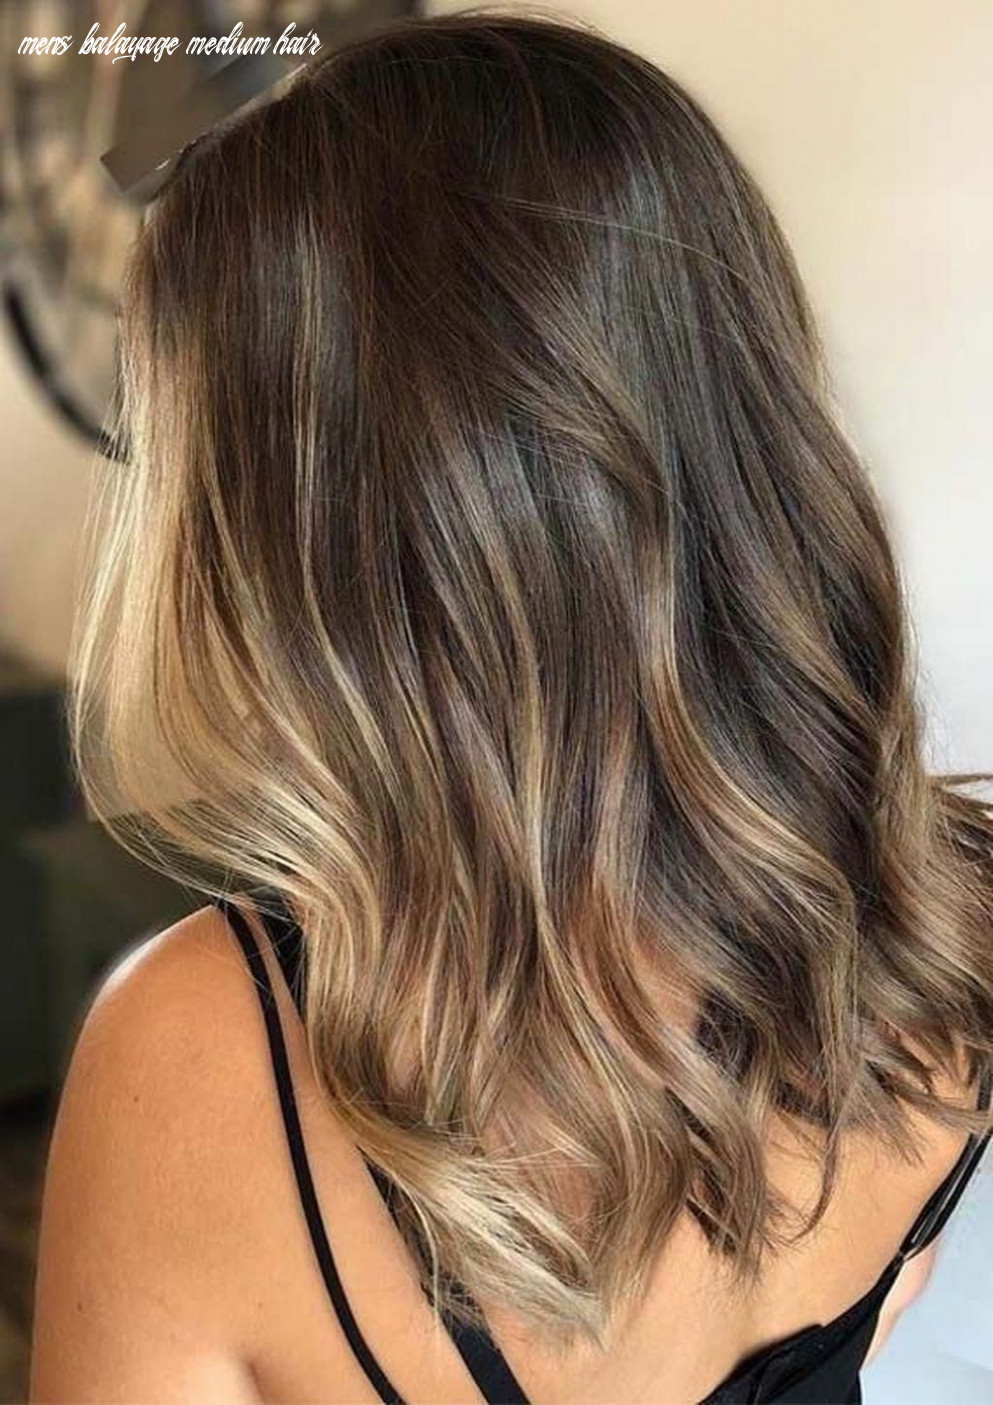 Pin on Thin Hair Ideas